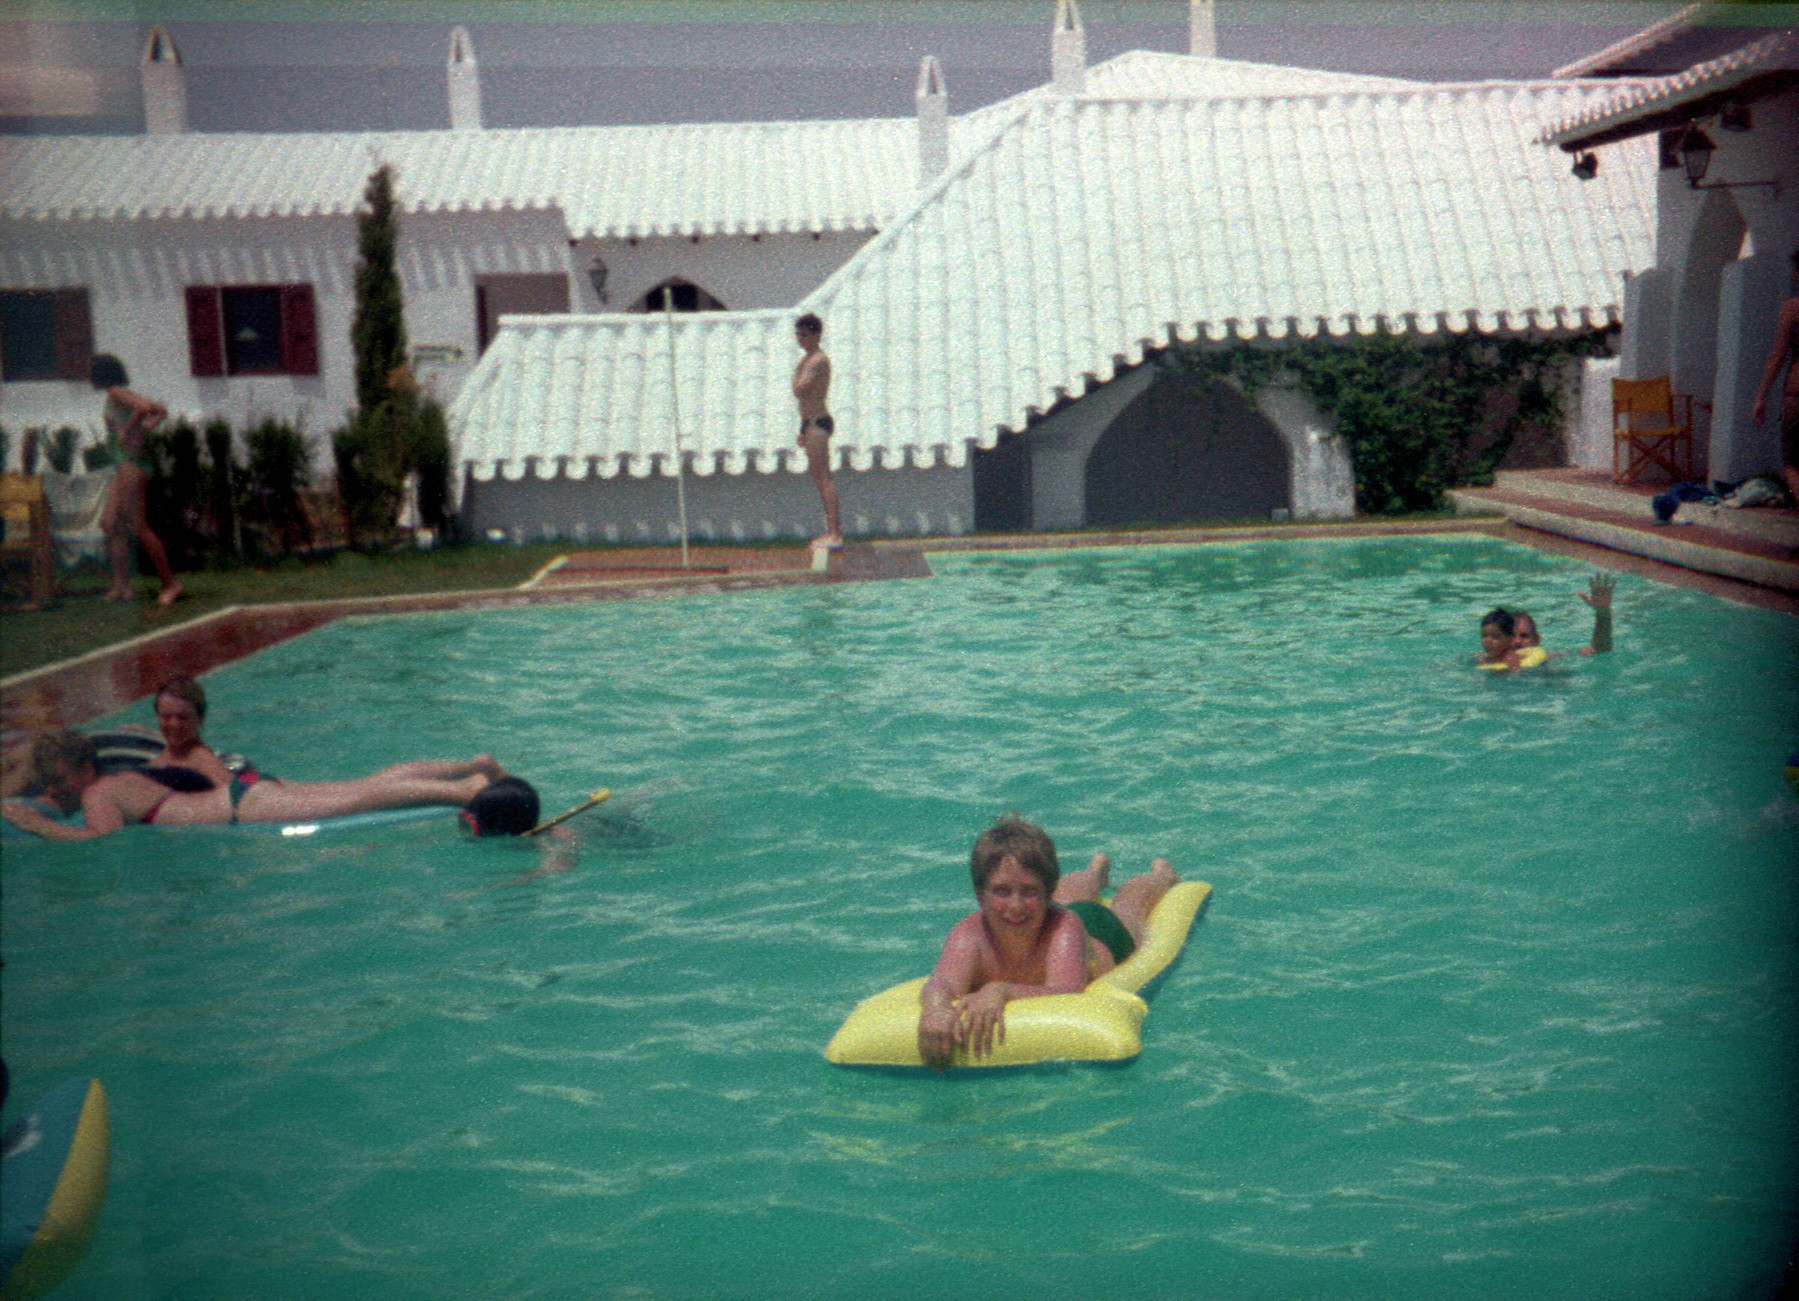 Me, on in a swimming pool, on holiday in Minorca in the 1980s